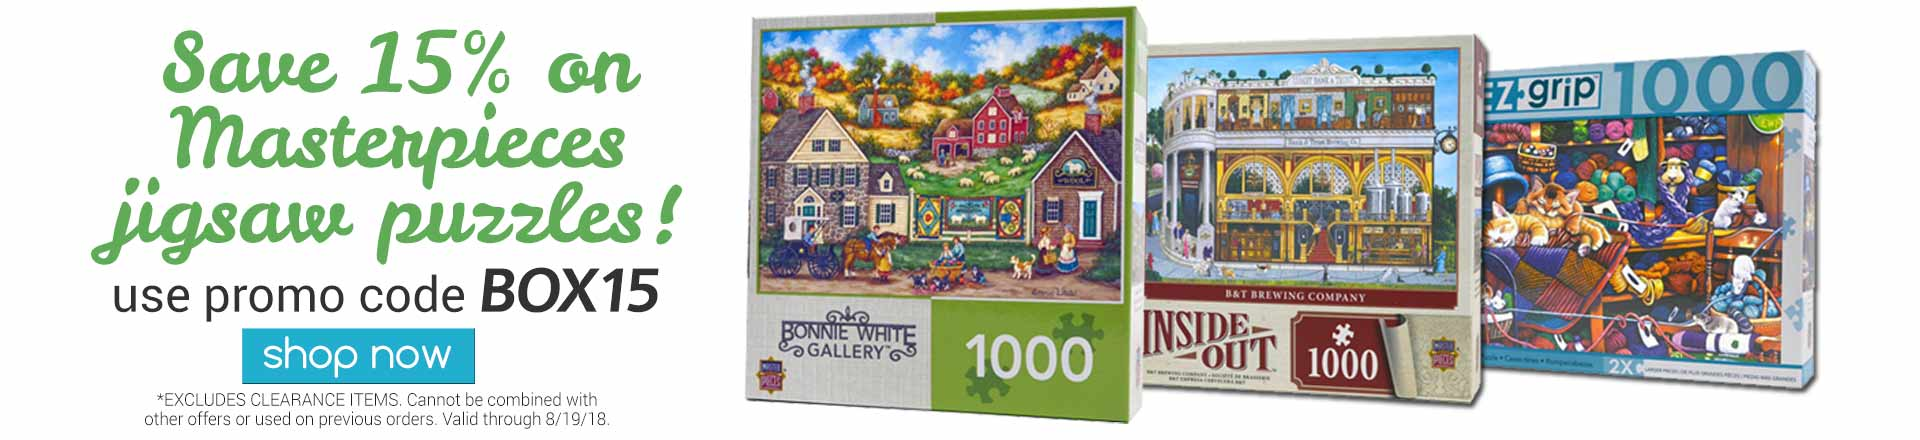 Save on Masterpieces Puzzles